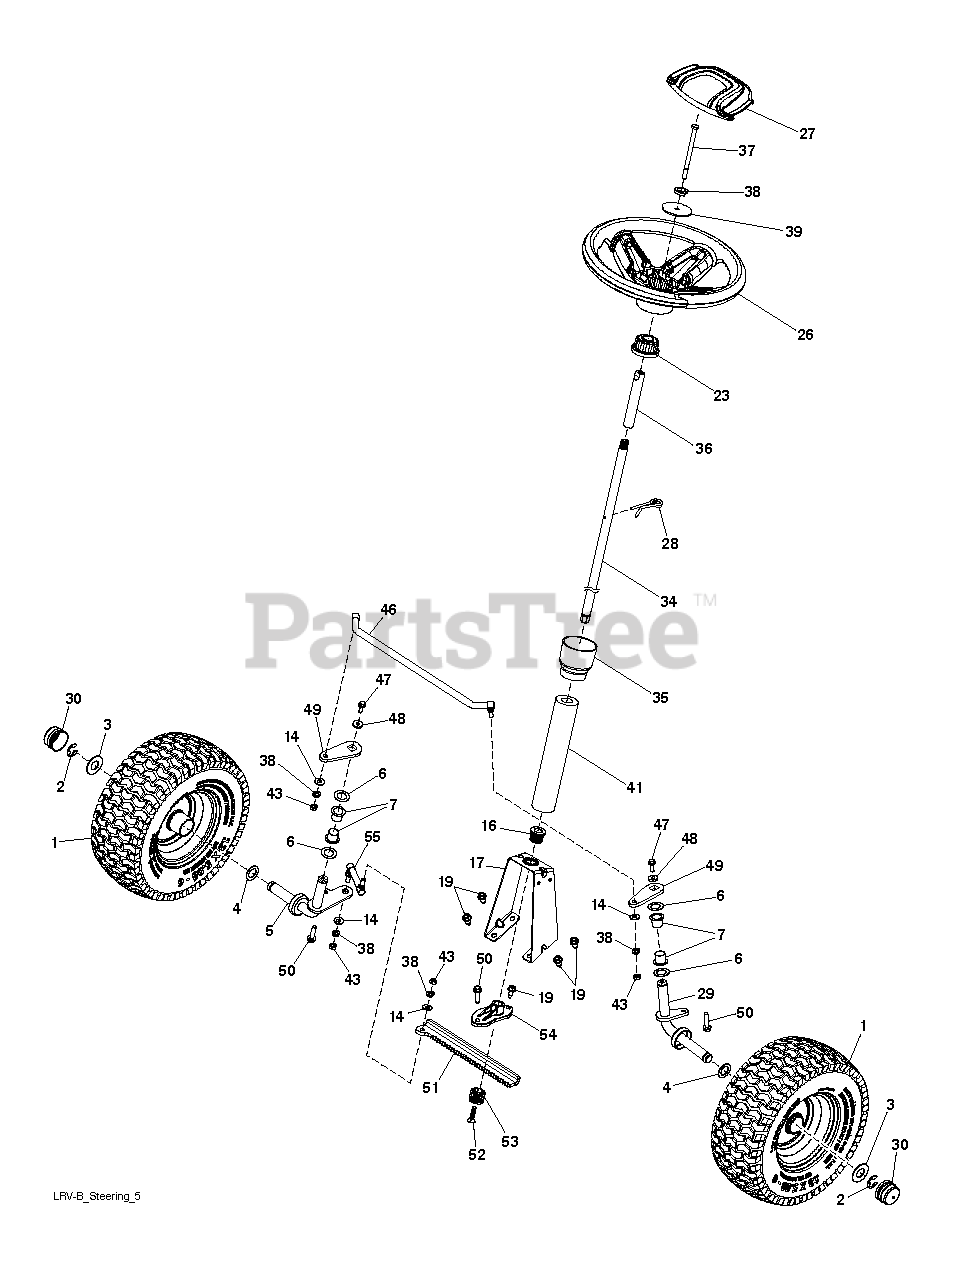 Poulan Pro Parts On The Steering Diagram For Pb 301